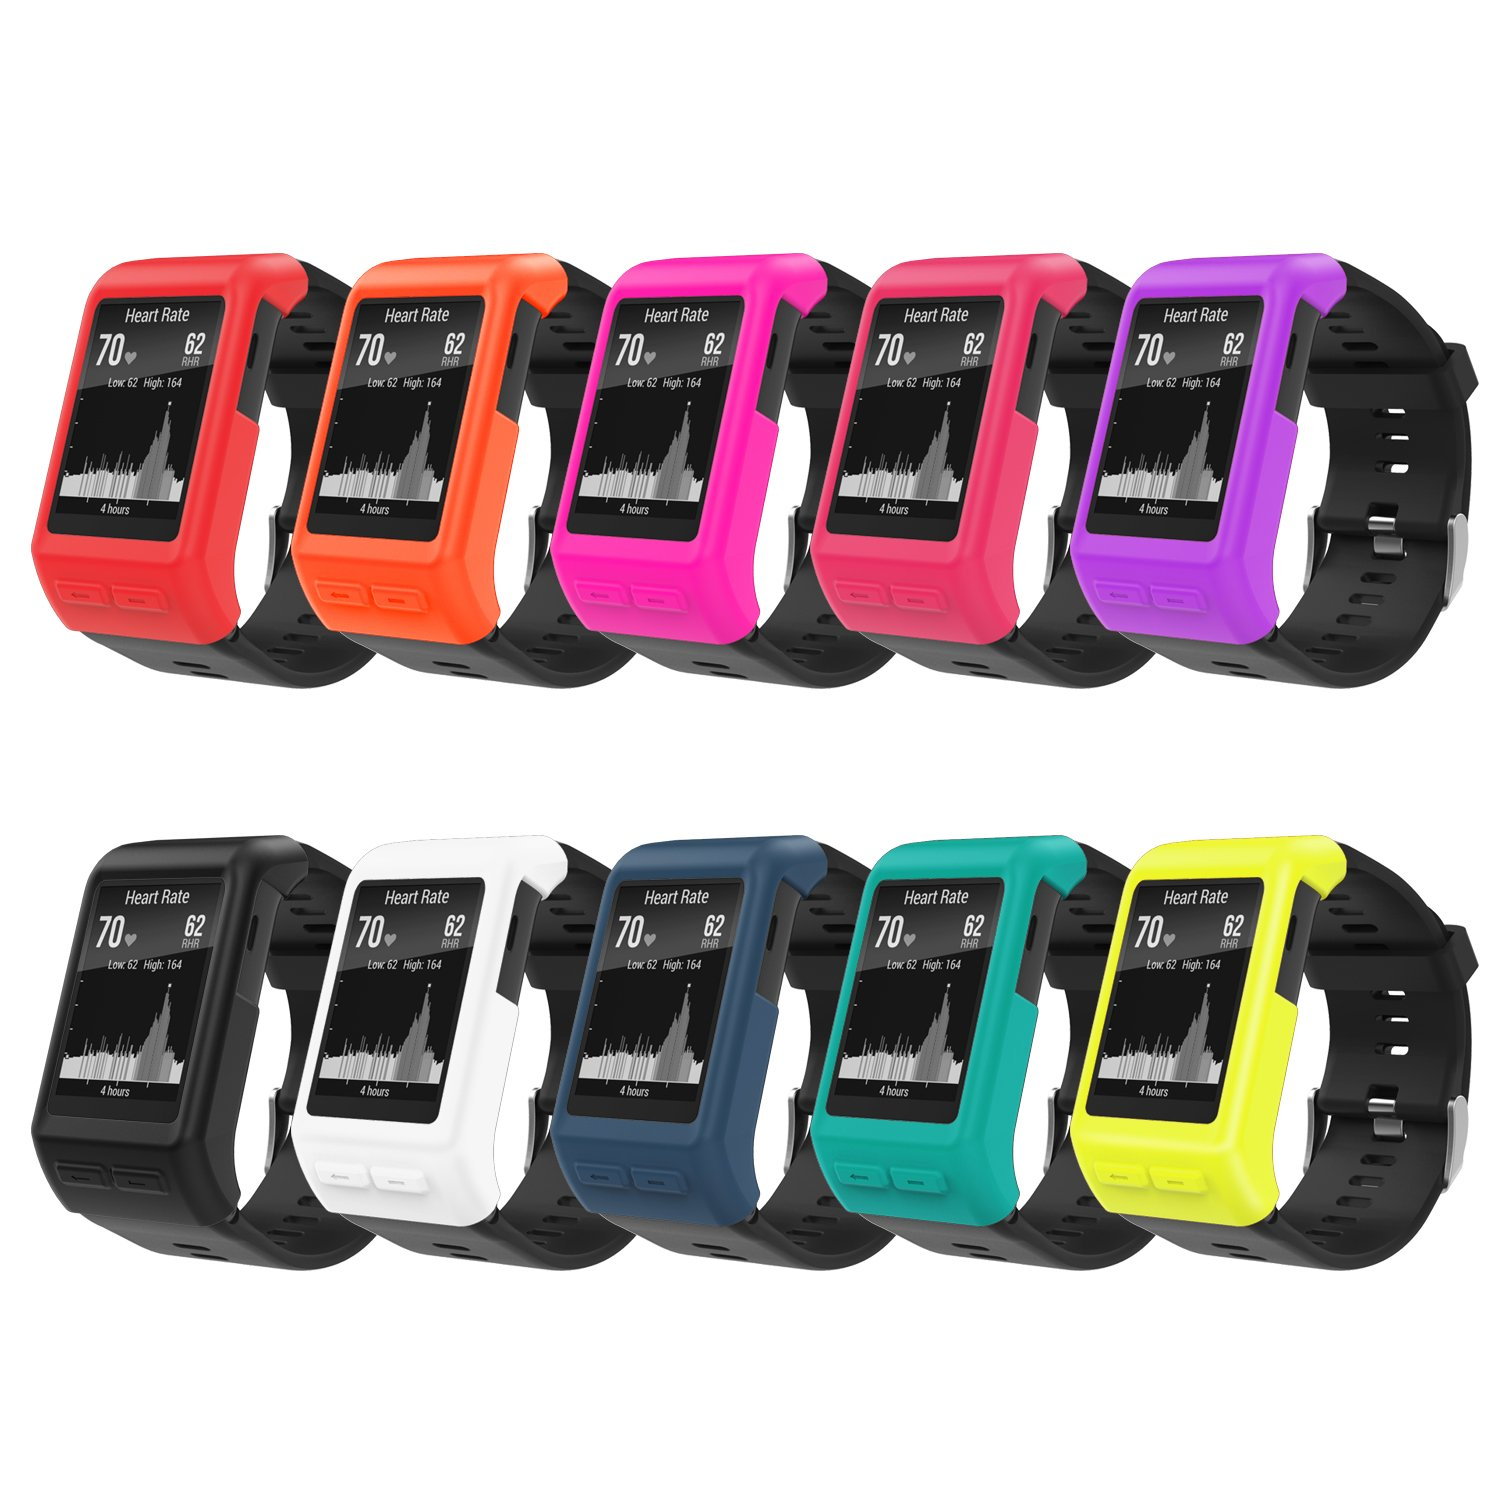 MoKo Case for Garmin Vivoactive HR Watch, [10 PACK] Soft Silicone Full Body Protective Cover Accessories for Garmin vivoactive HR Smart Watch, Multi Colors (10PCS) by MoKo